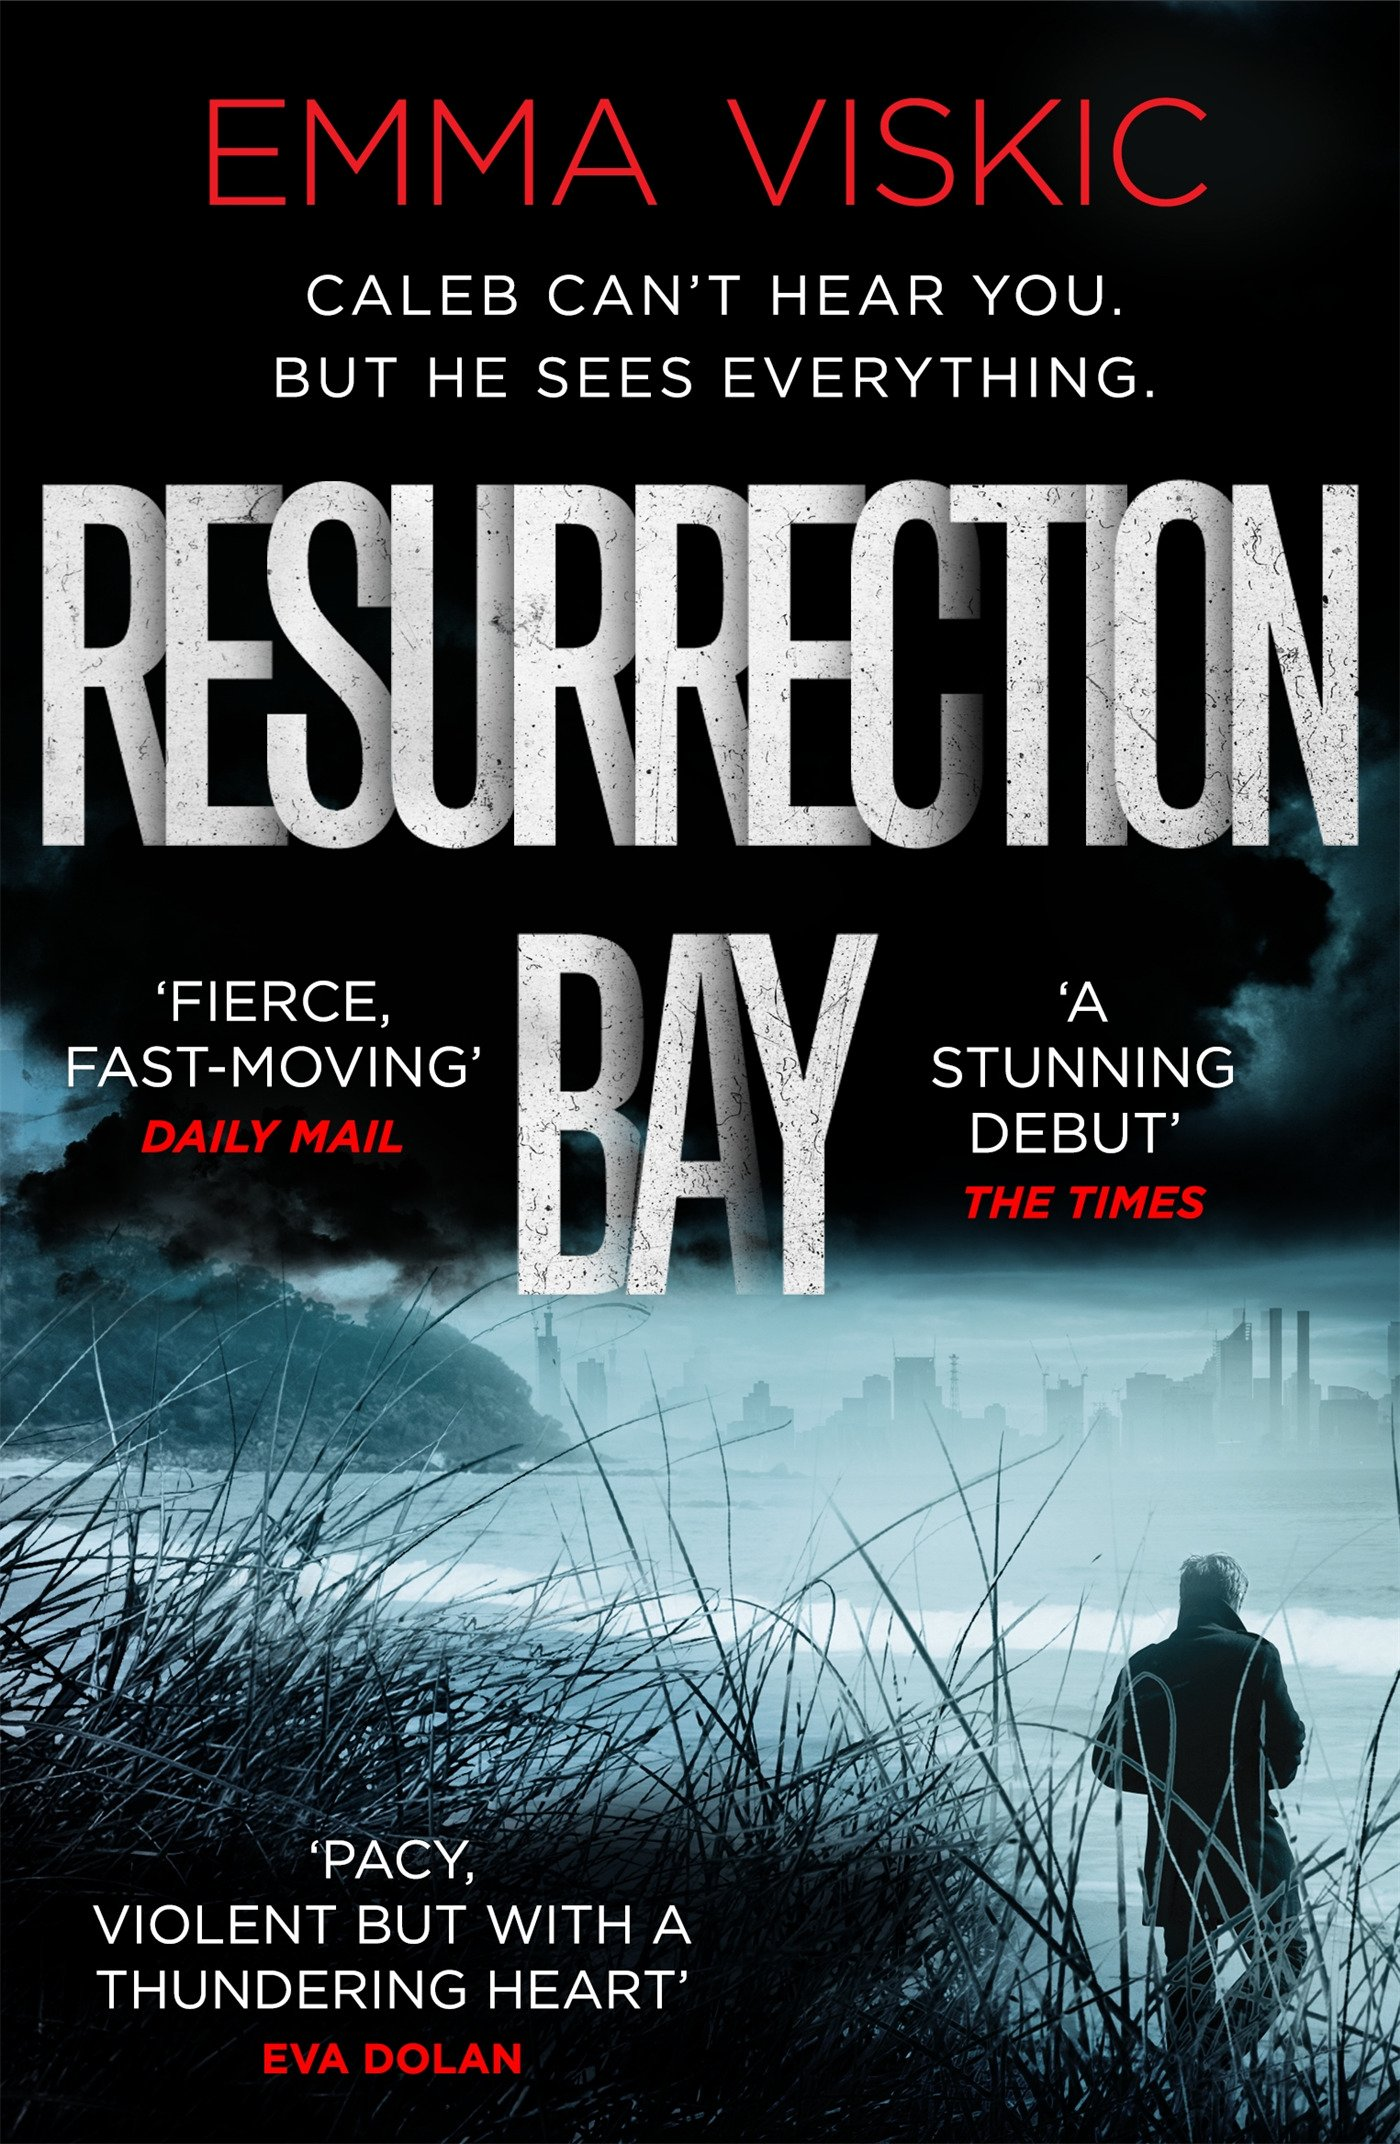 *With the joyous news that Resurrection Bay is now available in paperback  in the UK, and as one of my Top 10 reads of 2017, thought a timely reminder  of ...